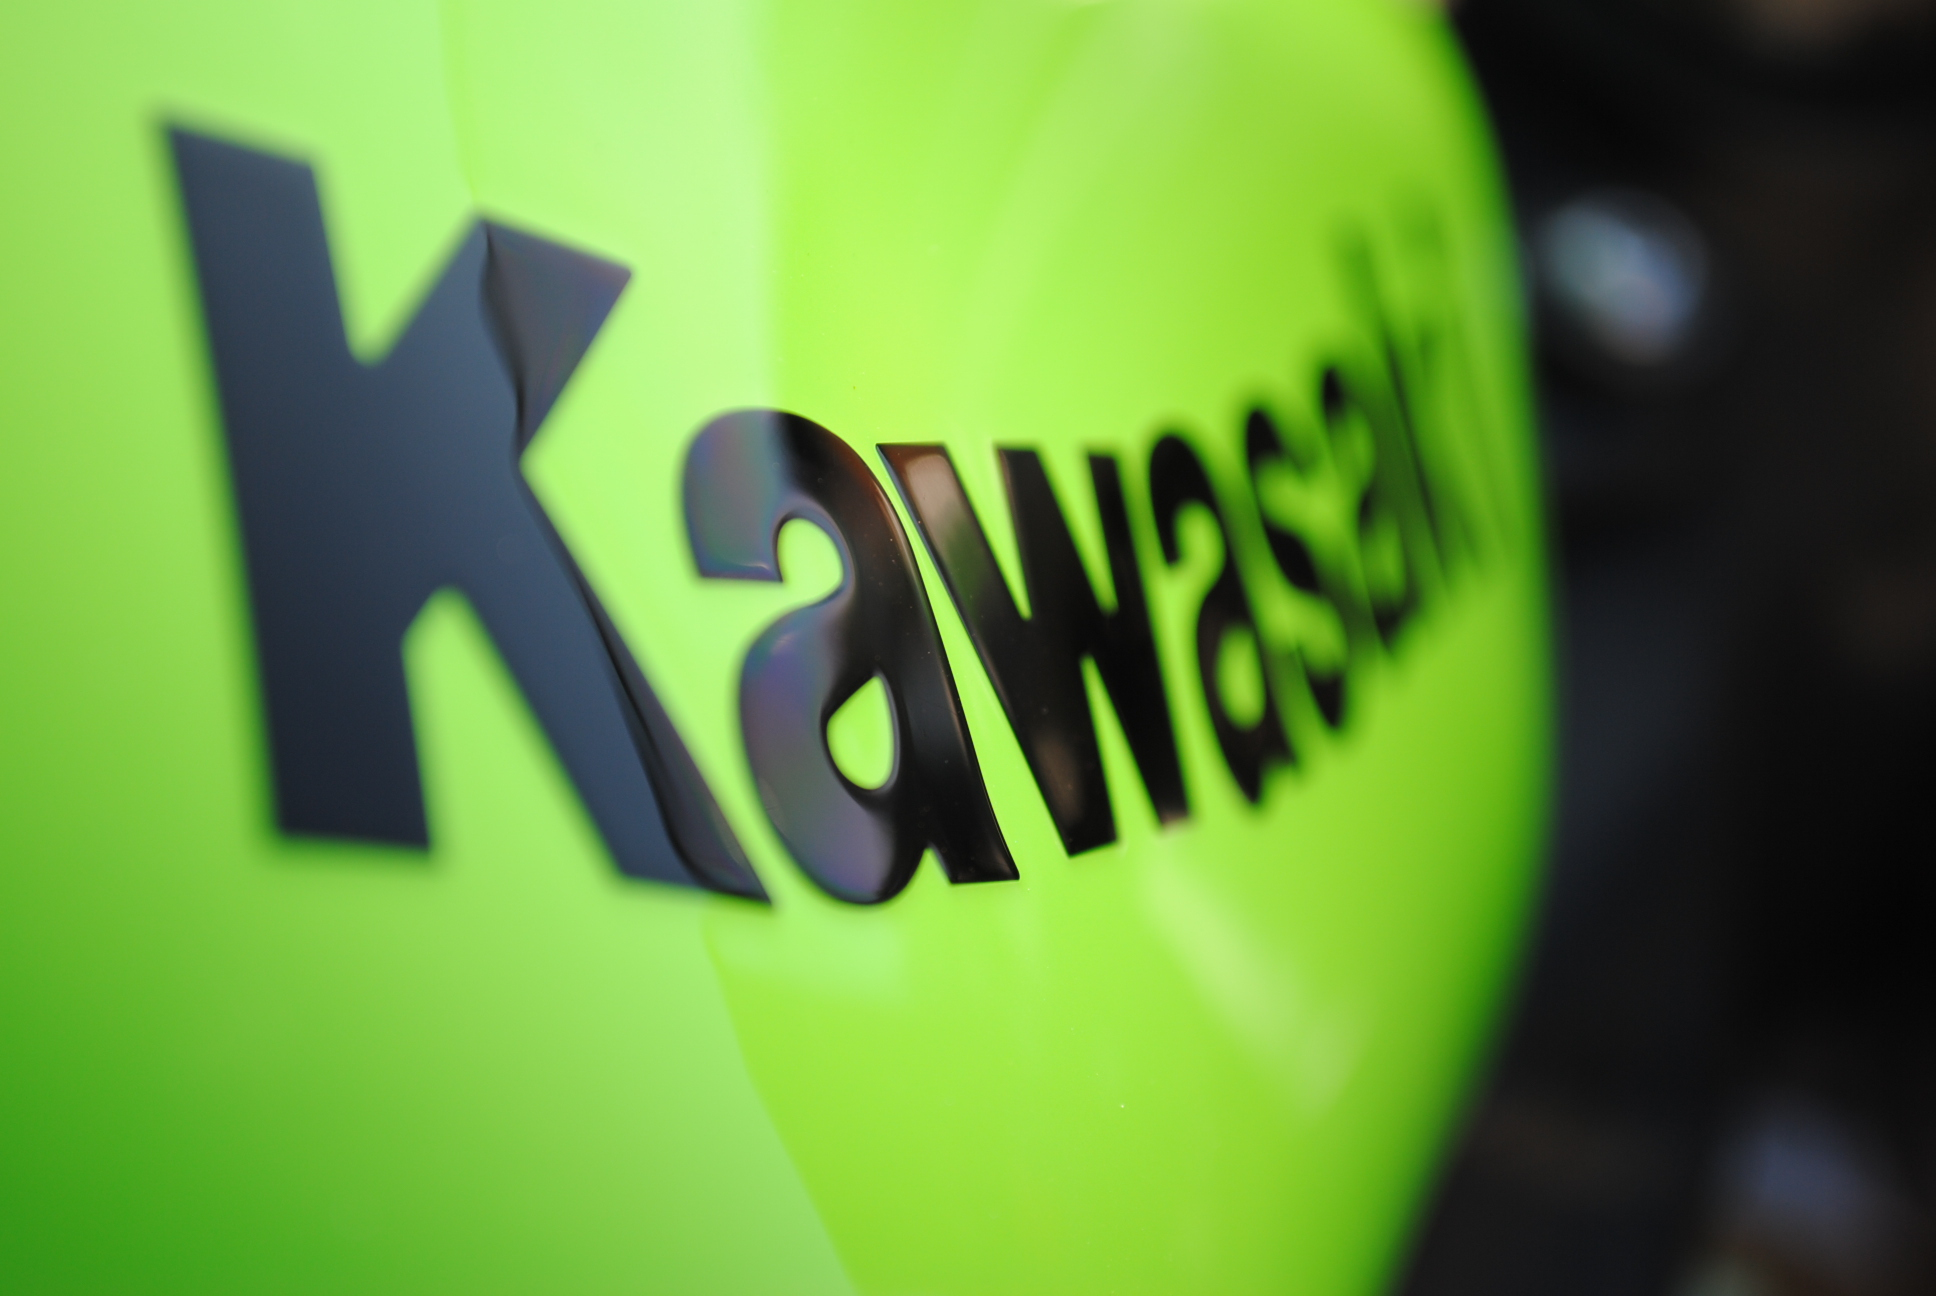 Download Kawasaki Logo 22844 1936x1296 Px High Definition Wallpaper